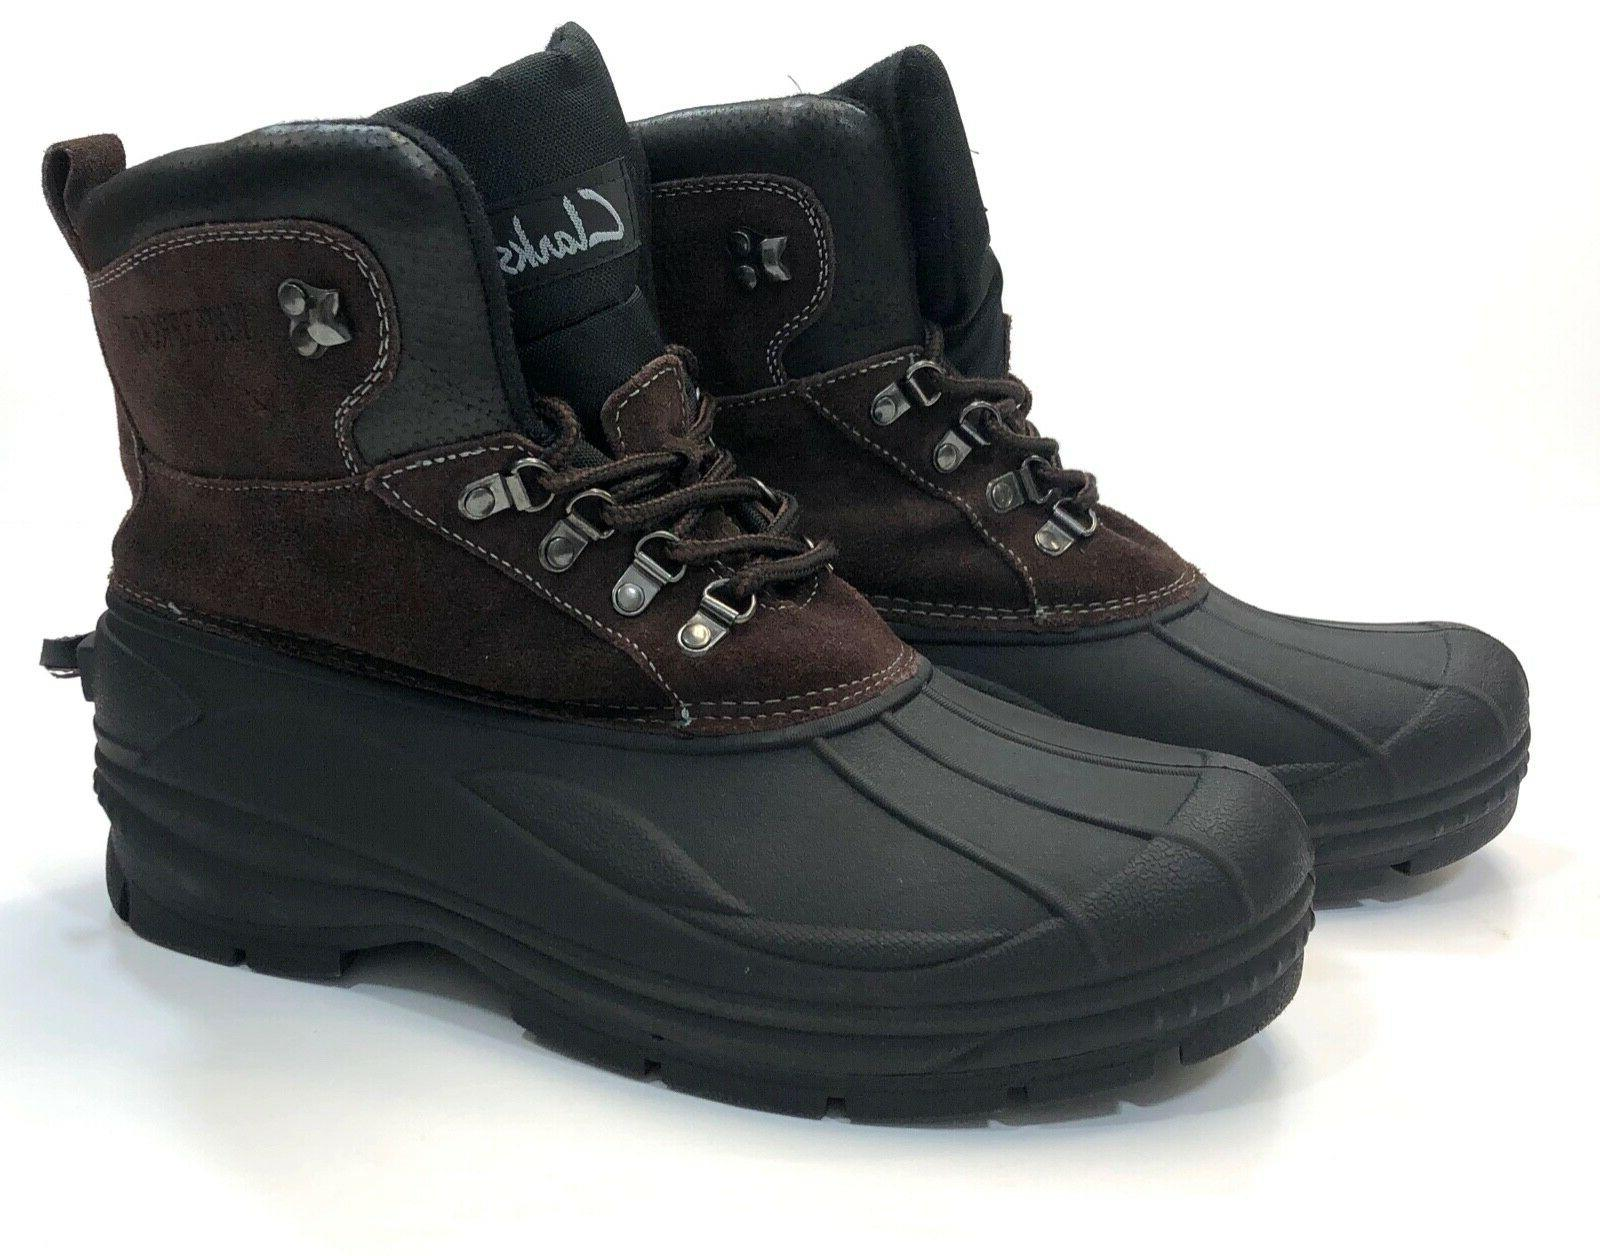 Clarks Crewson Edge Thermolite Insulated Boots Mens